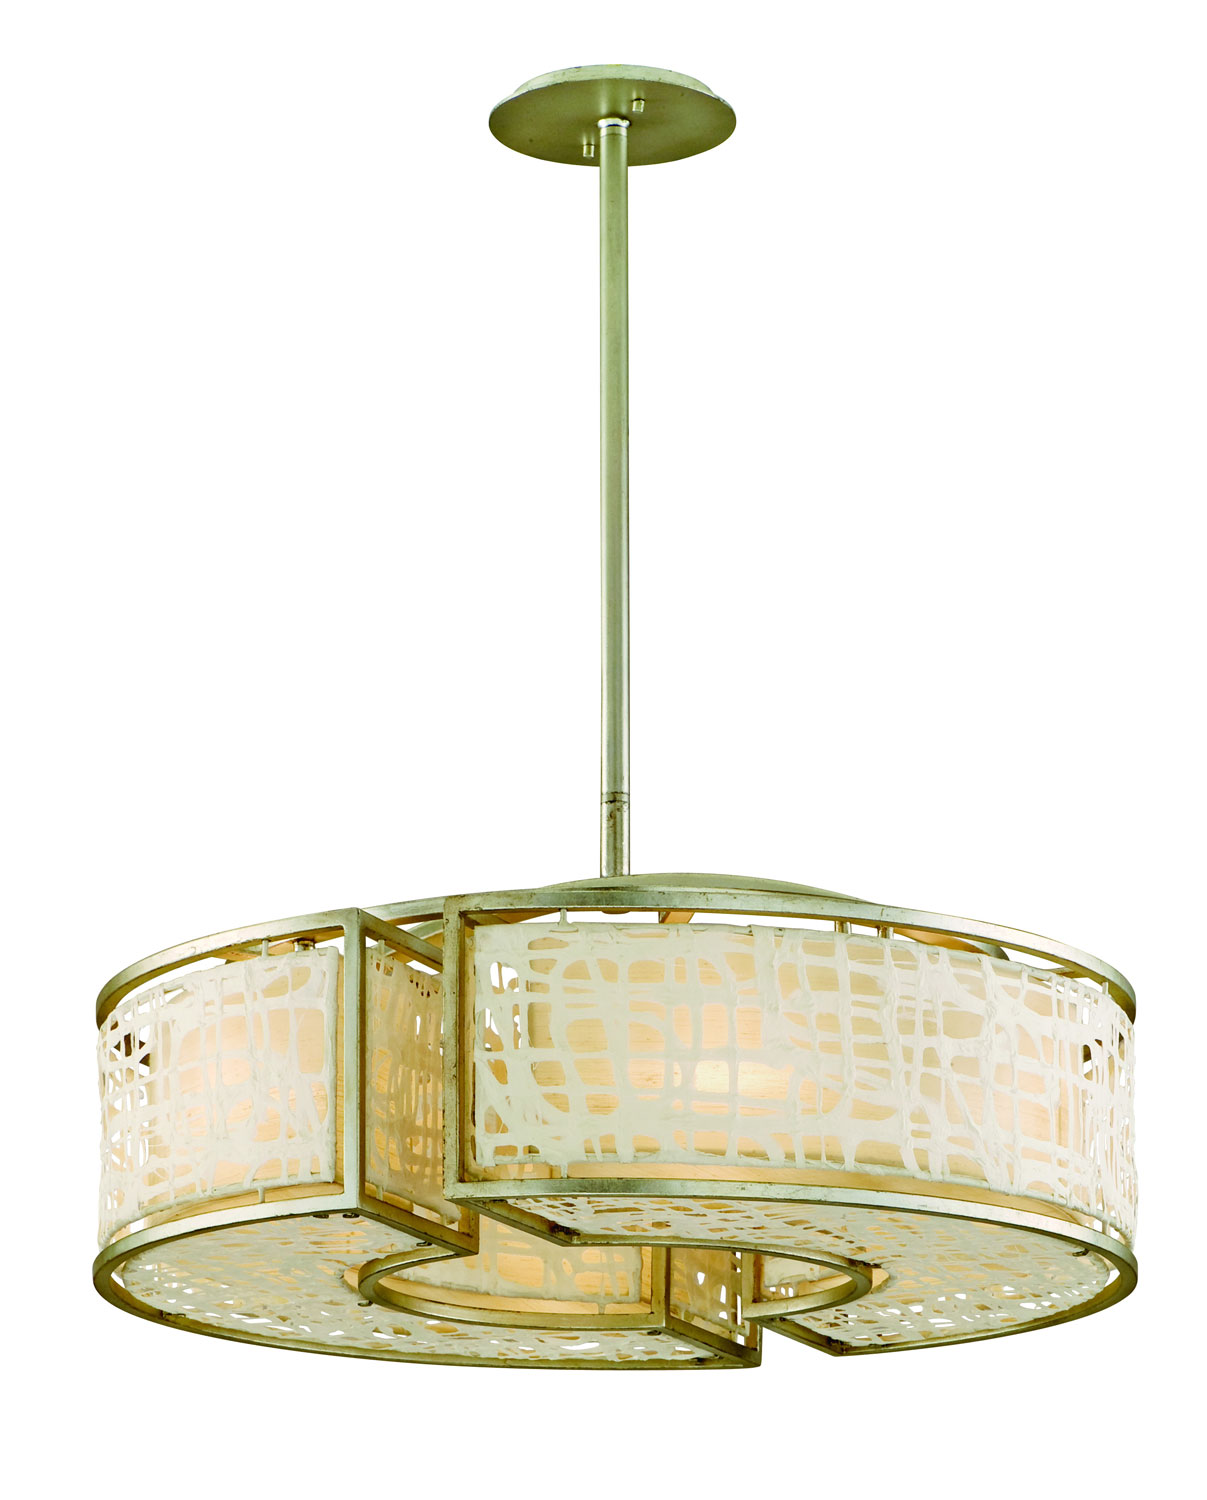 chandelier fixtures colonial tulum pan smsender fixture co revival light ceiling